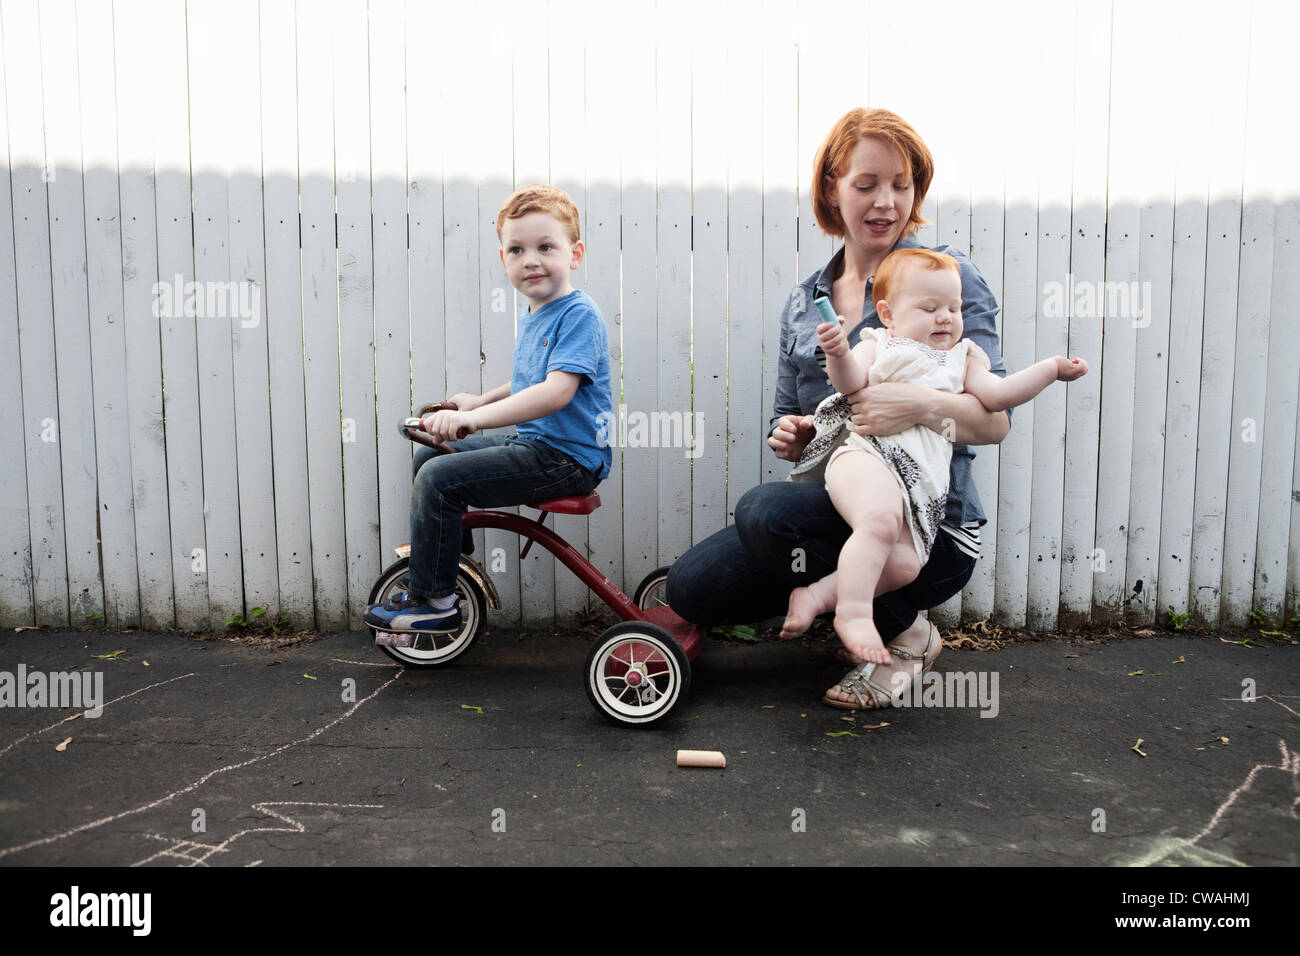 Mother playing in yard with two children - Stock Image